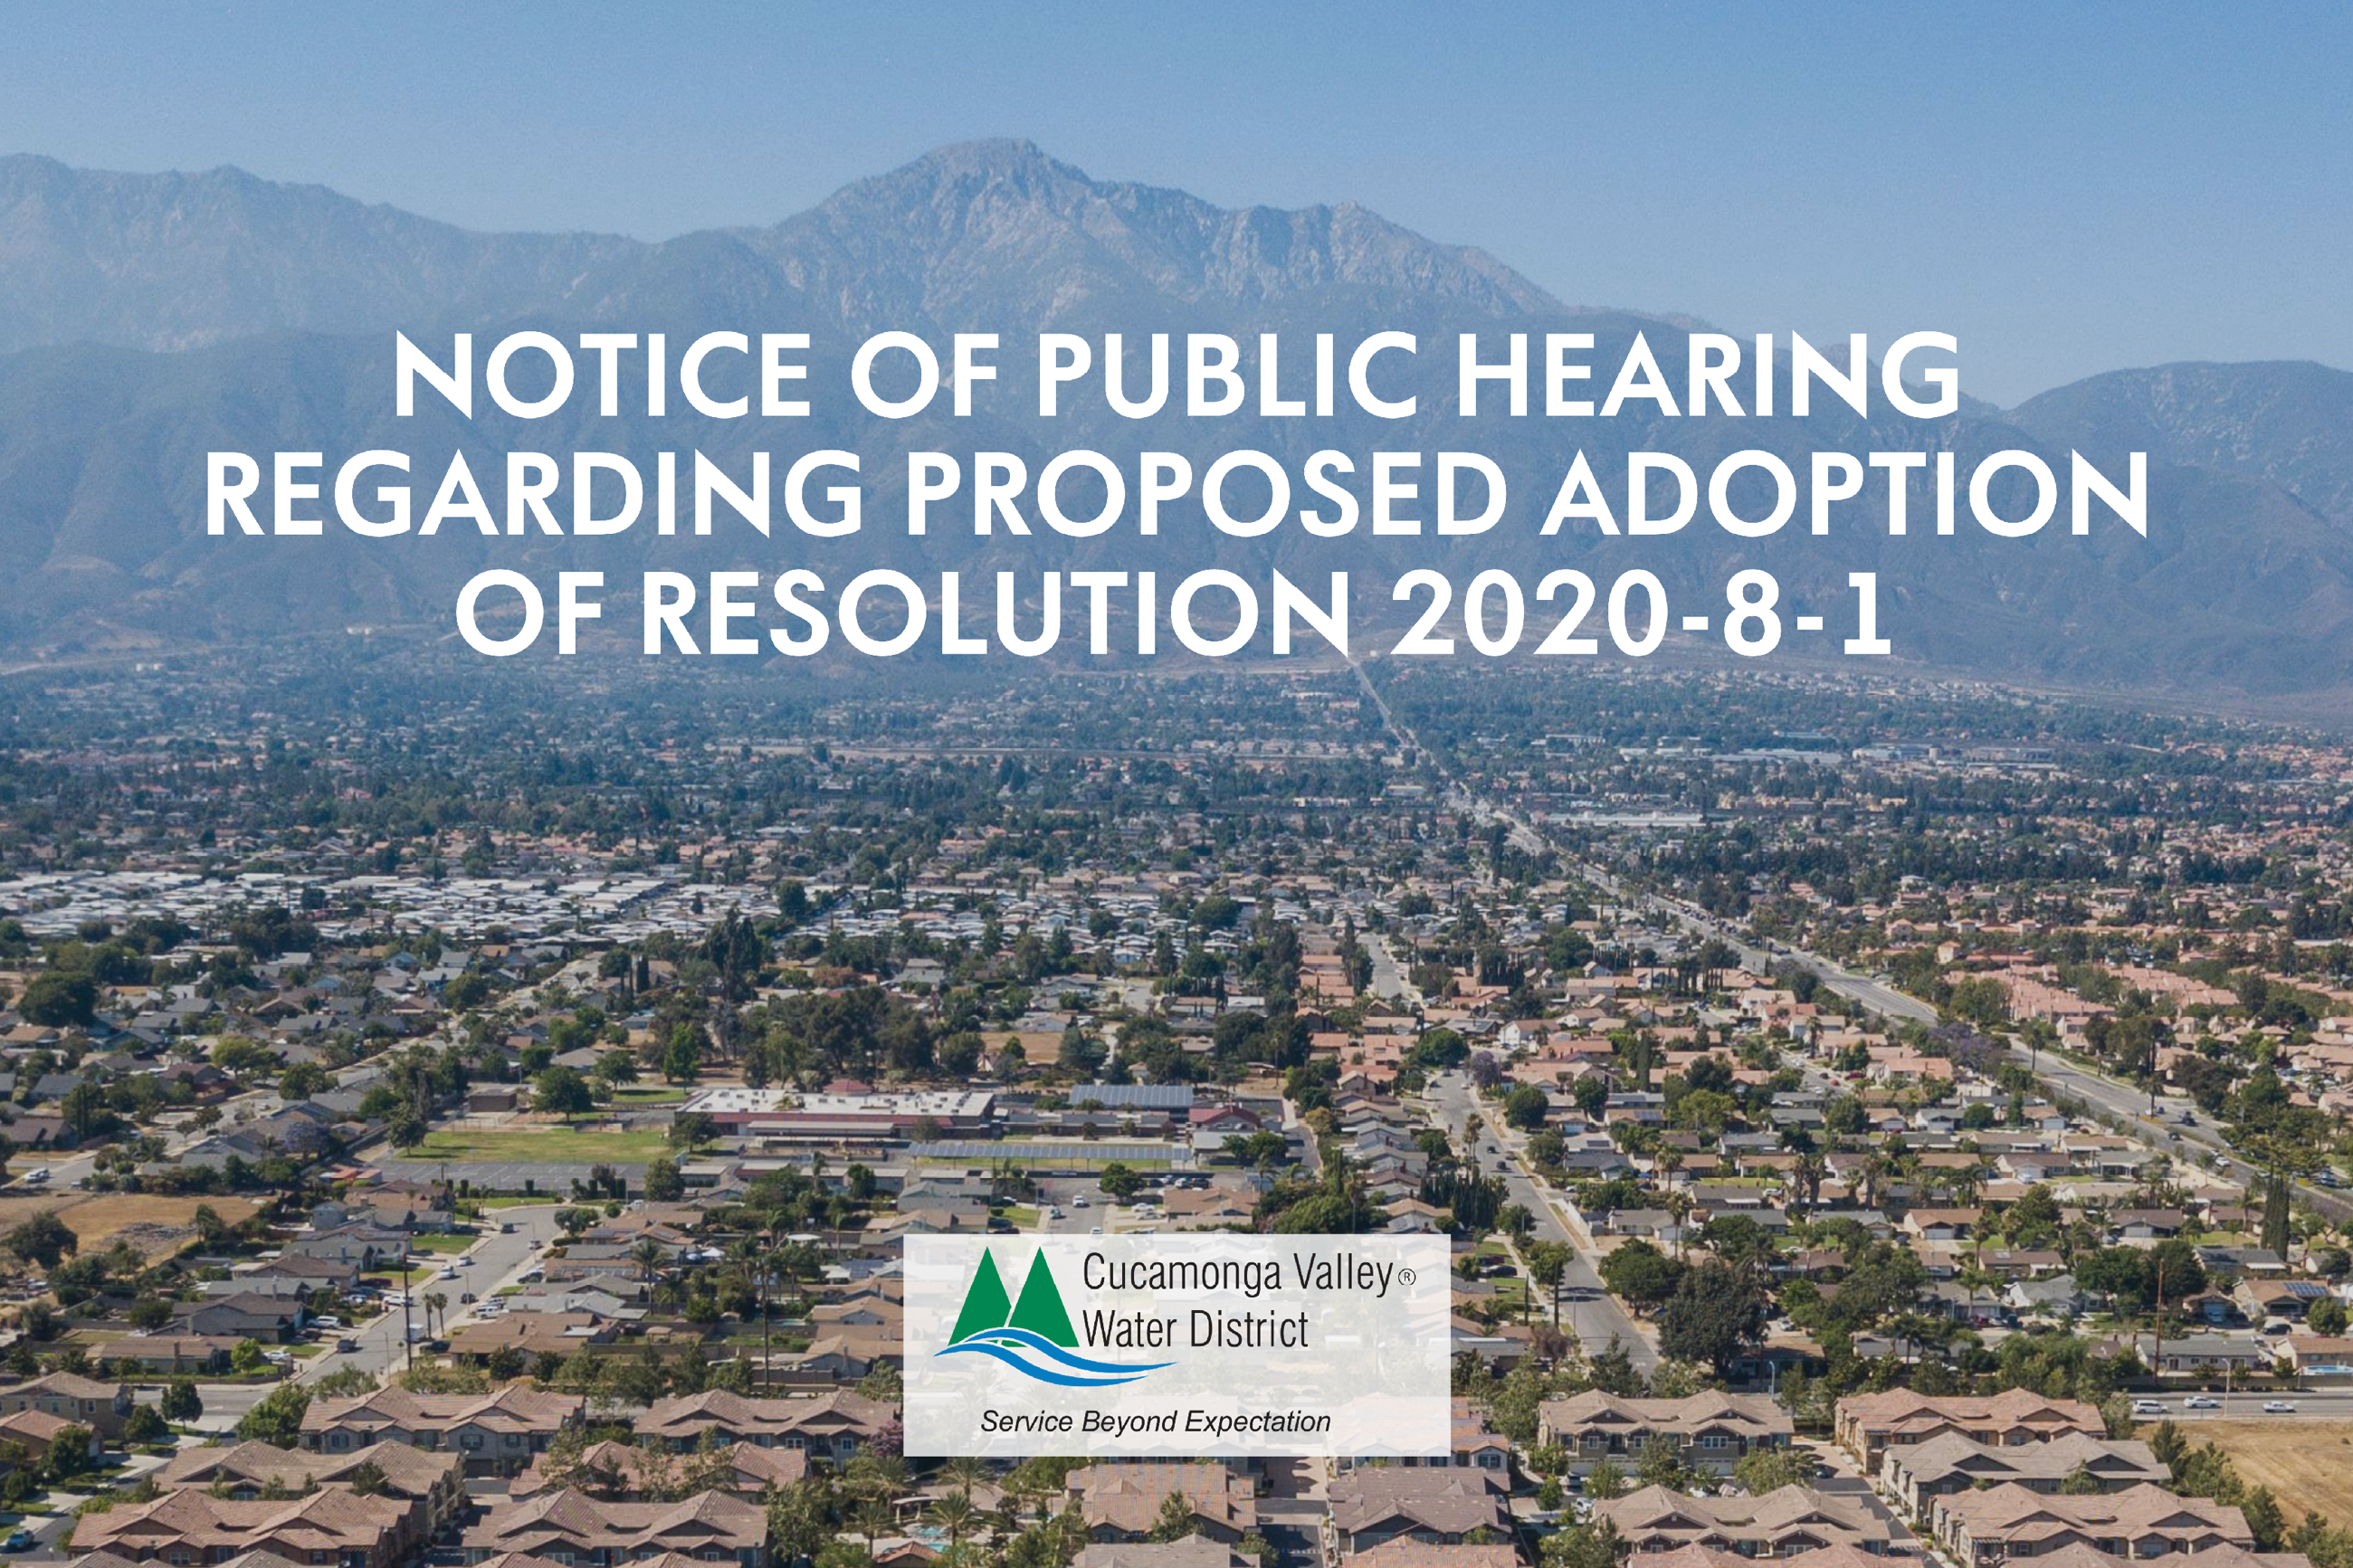 NOTICE OF PUBLIC HEARING REGARDING PROPOSED ADOPTION OF RESOLUTION 2020-8-1